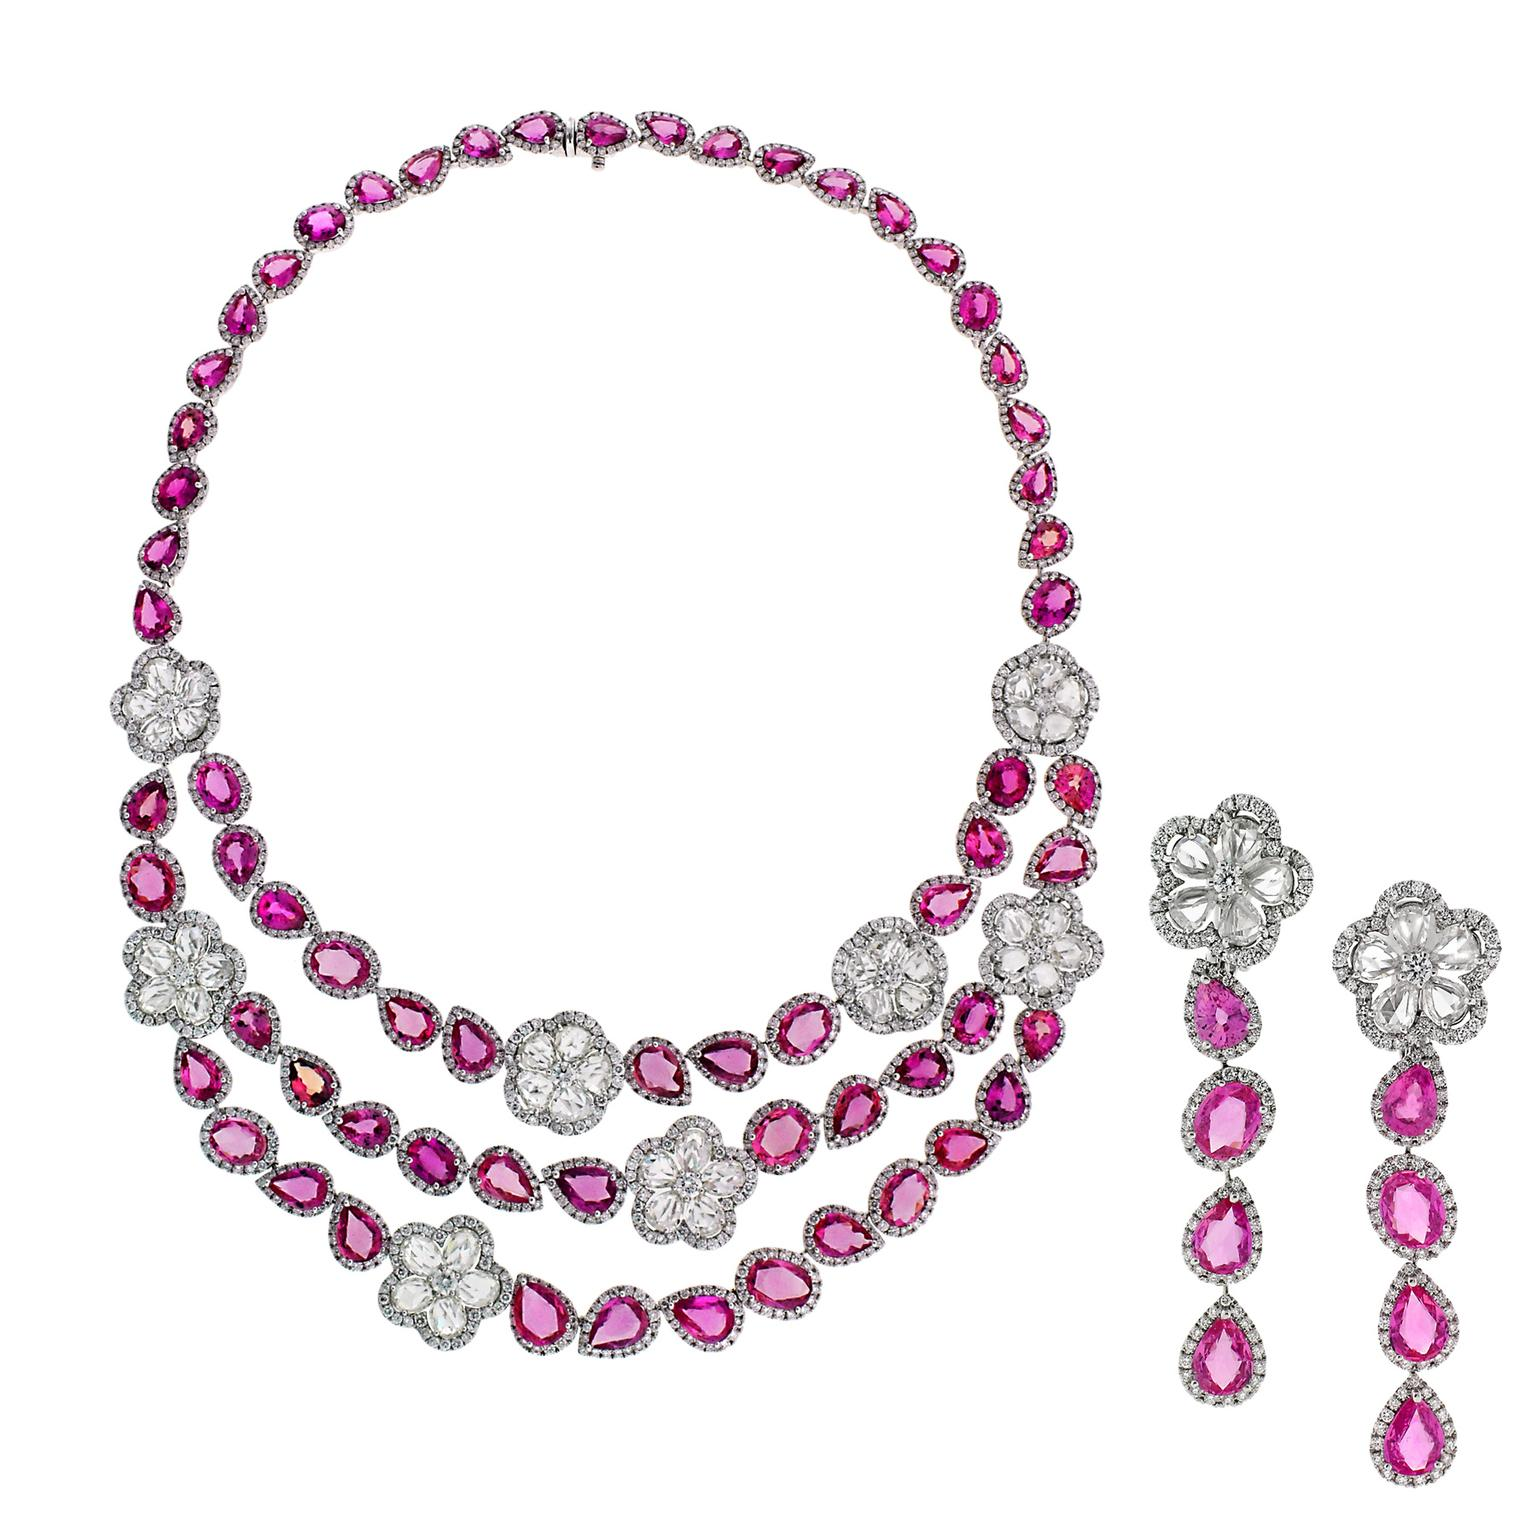 design carat necklace pink of an pin shades floral and triplet foliate gold violet sapphire varying scrolling series a composed